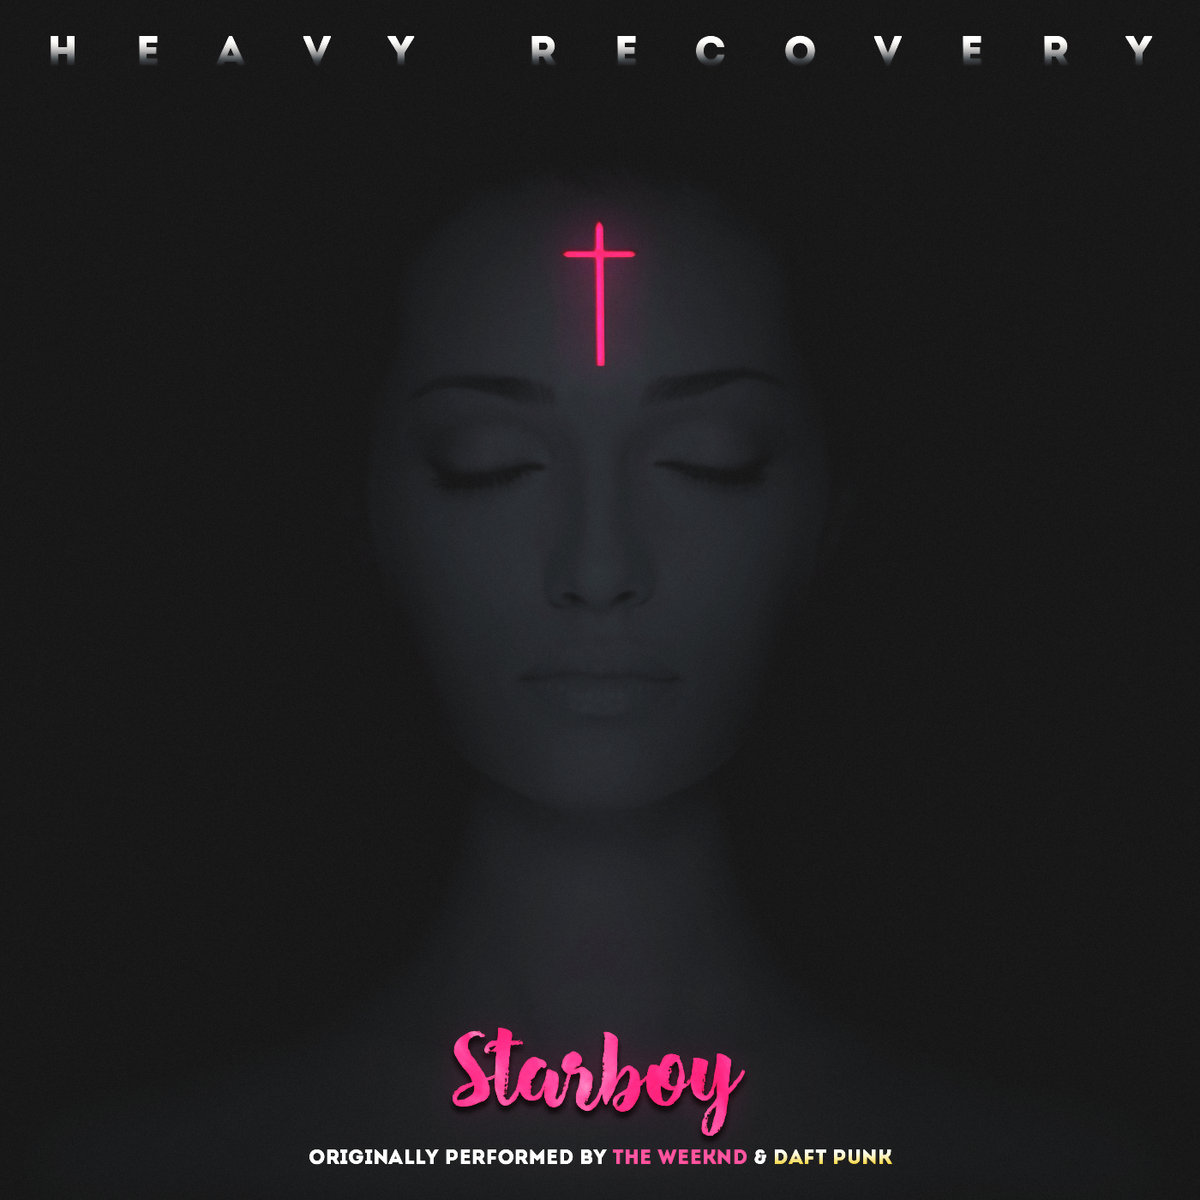 Heavy Recovery - Starboy (The Weeknd & Daft Punk cover) (2016)